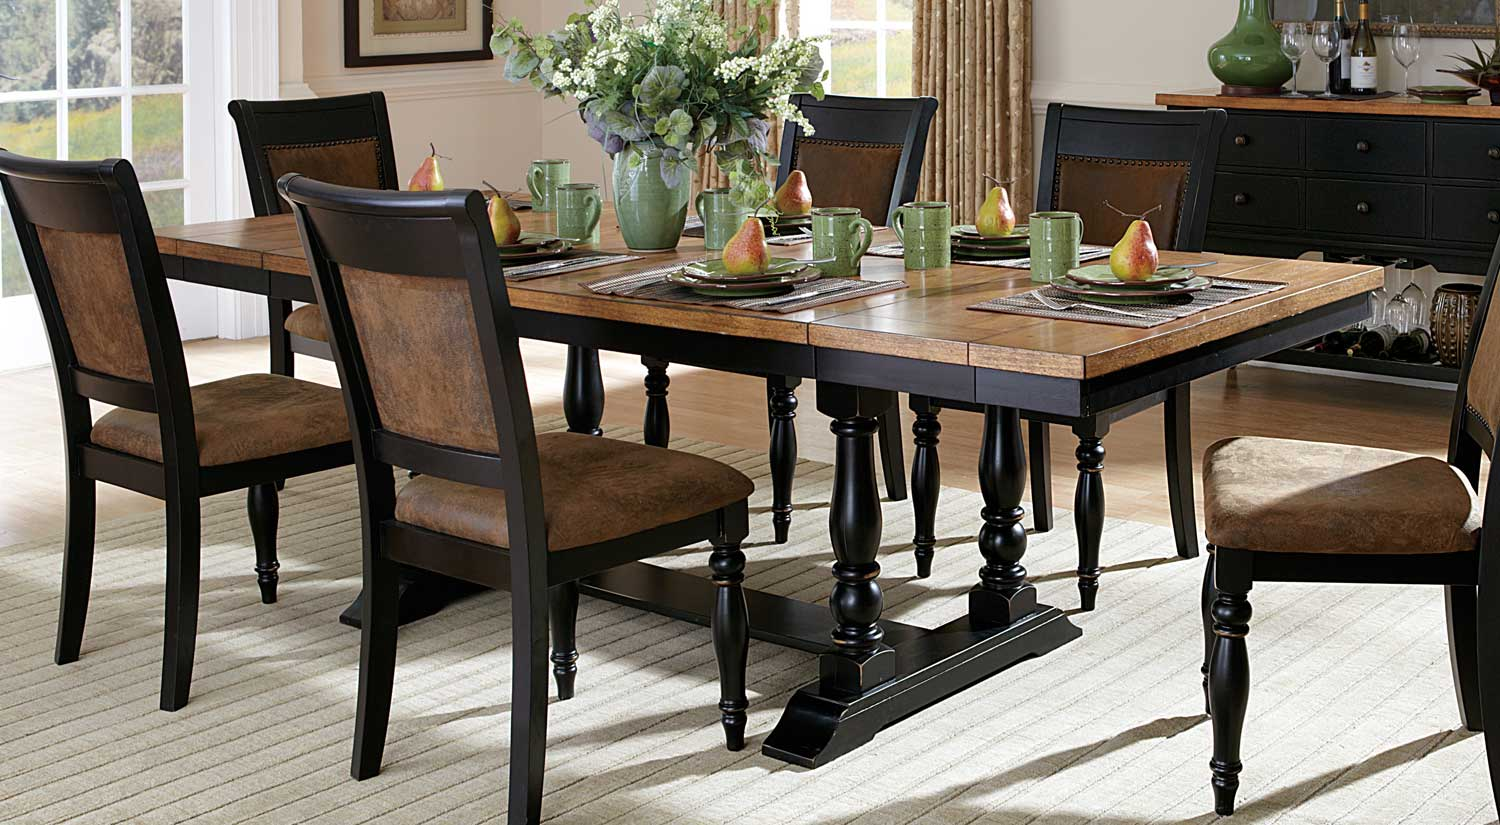 Homelegance Grisoni Dining Table With Two End Leaves Acacia Distressed Blac